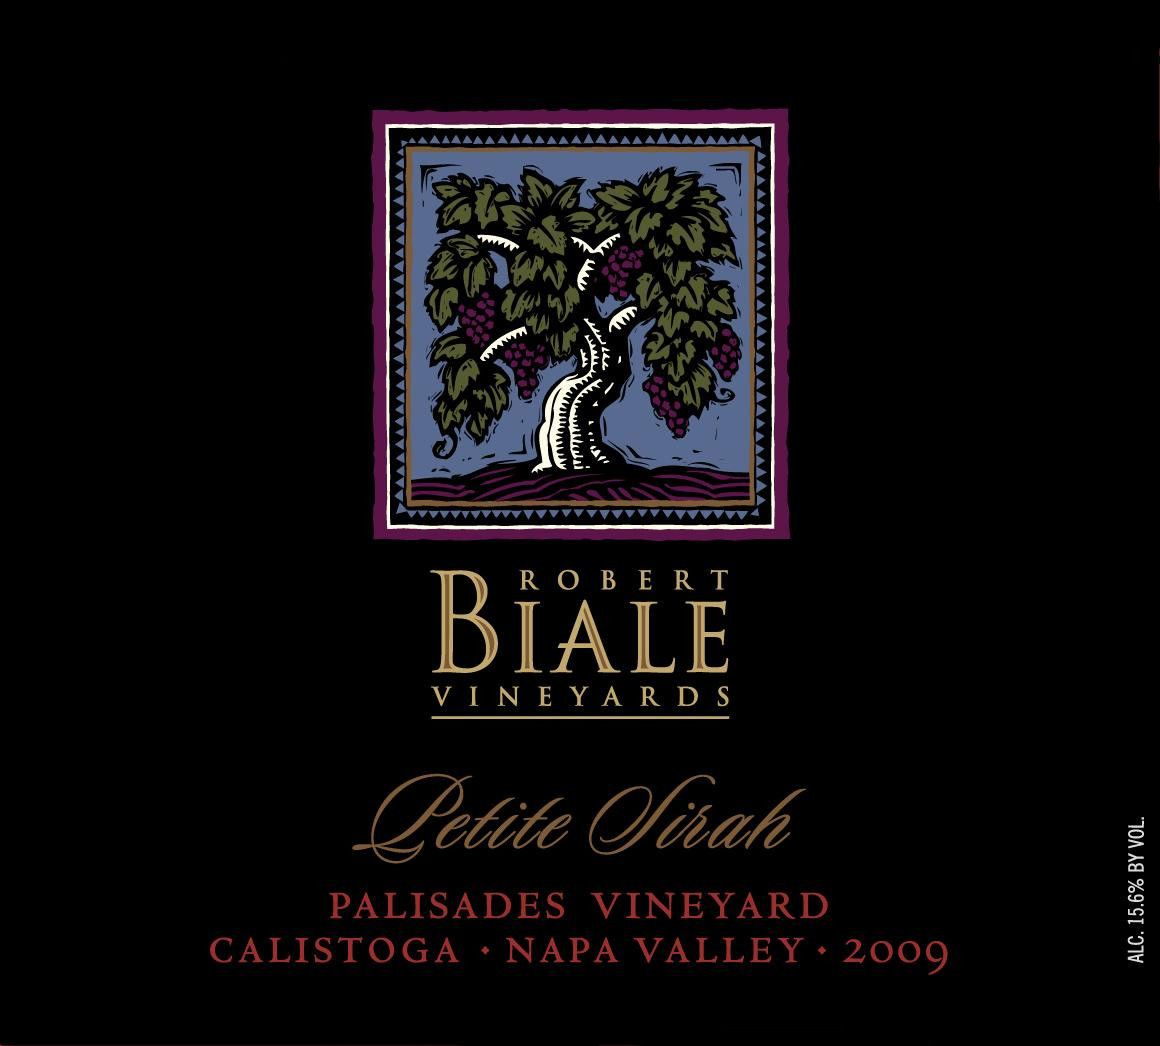 Robert Biale Vineyards Palisades Vineyard Petite Sirah 2009 Front Label